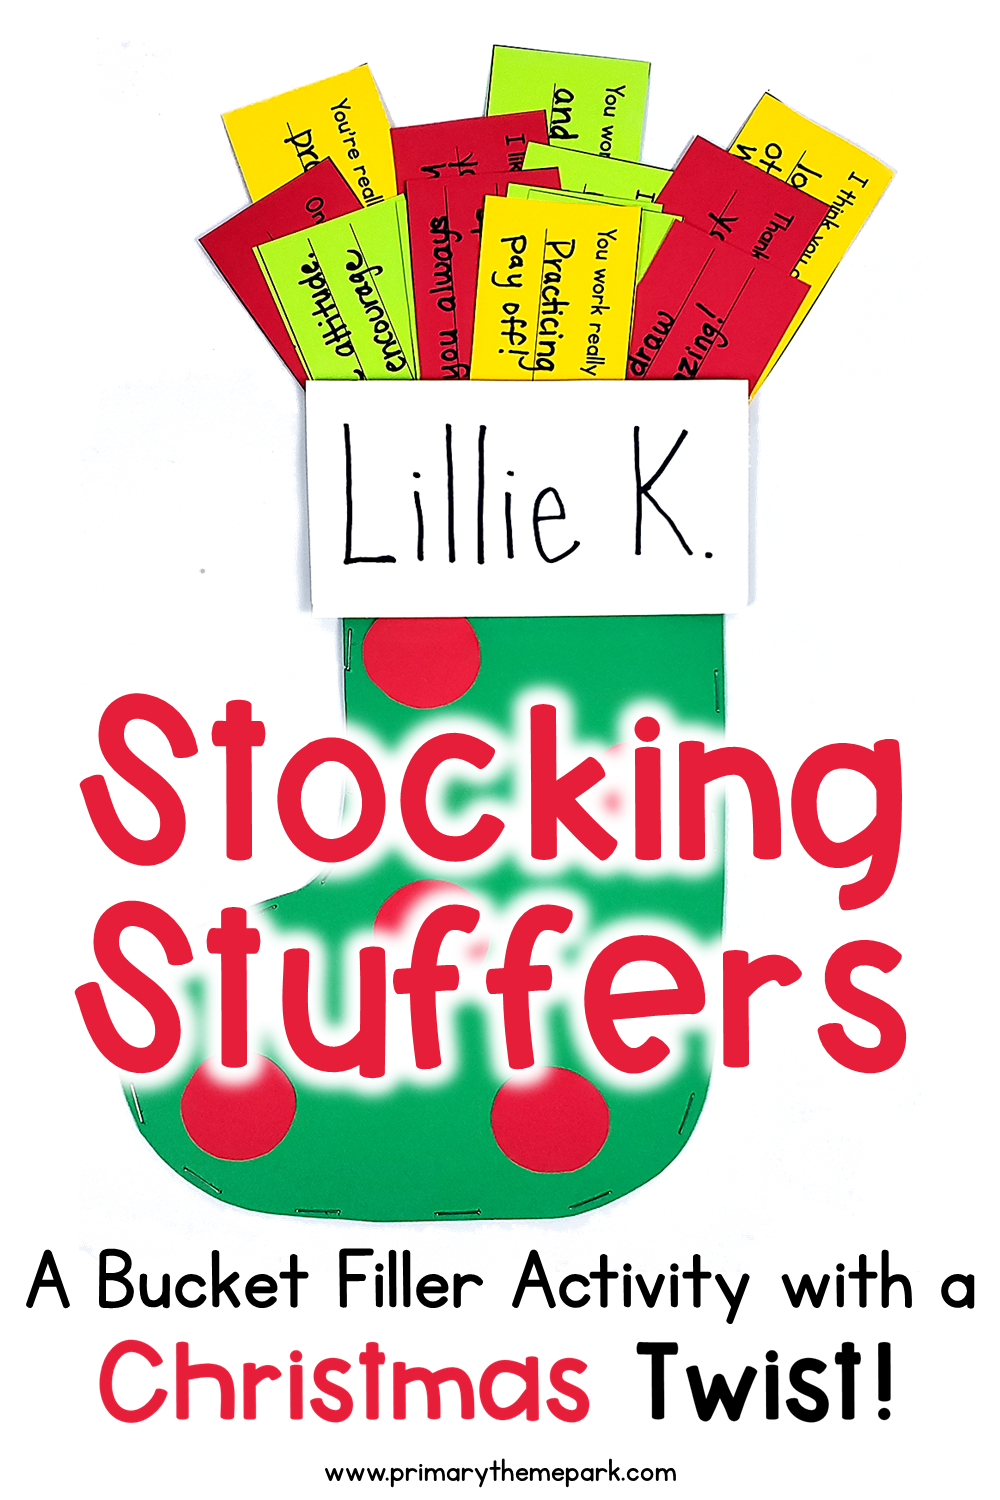 Stocking Stuffer Activity for Kids: A Bucket Filler Activity with a Christmas Twist! Includes free printable.